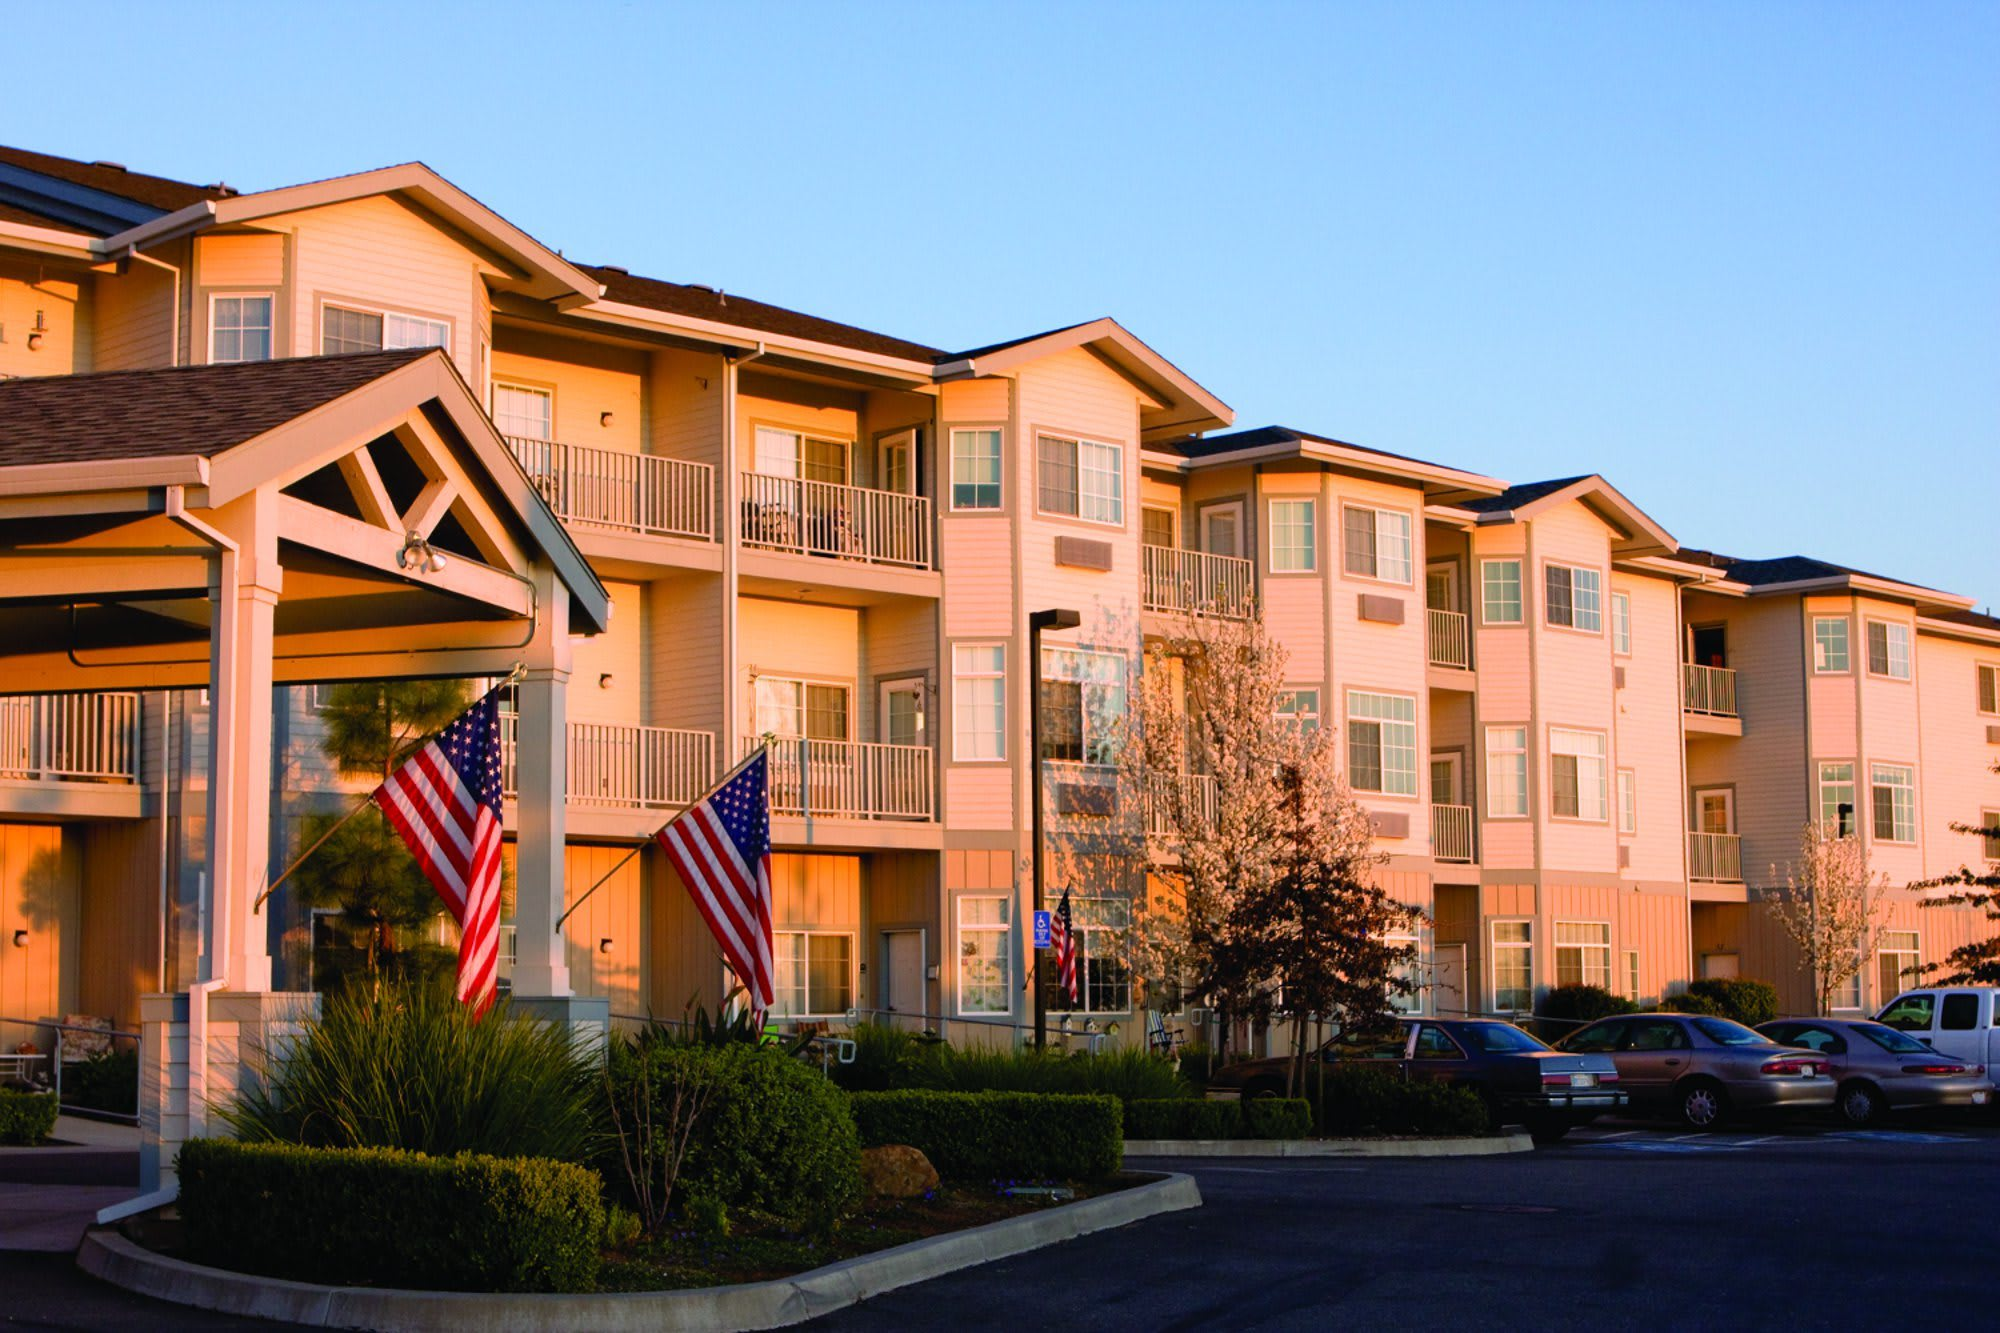 Photo 1 of Pacifica Senior Living Country Crest